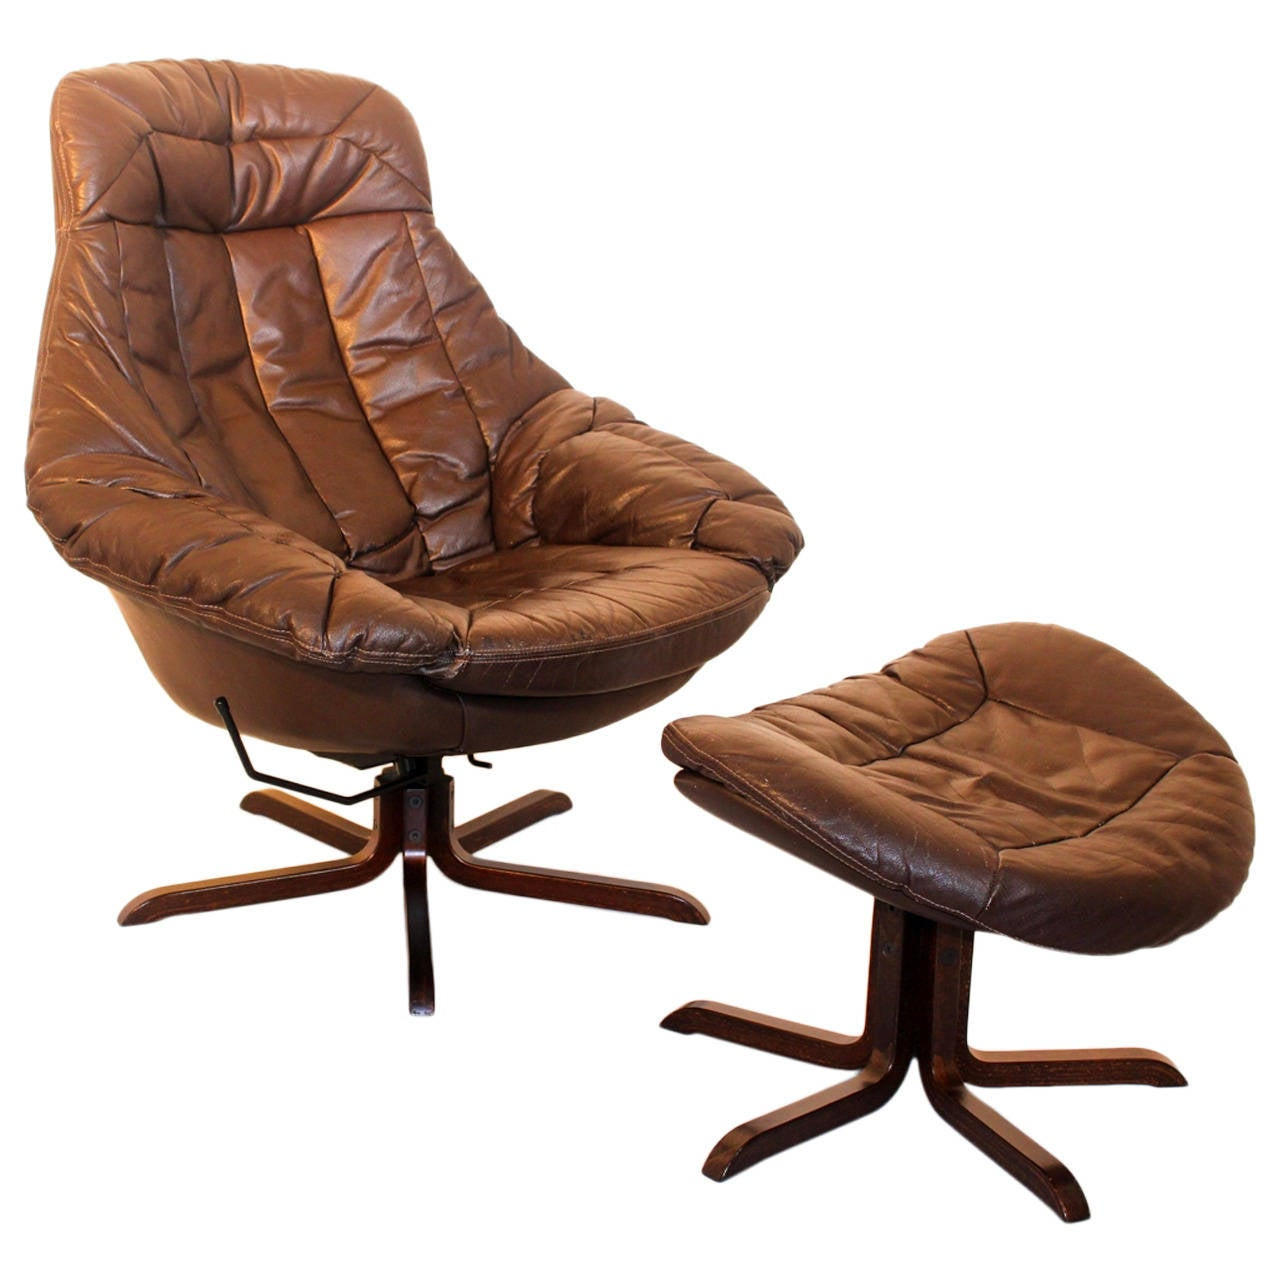 Brown Leather Lounge Chair with Ottoman by H. W. Klein, Denmark, 1970s